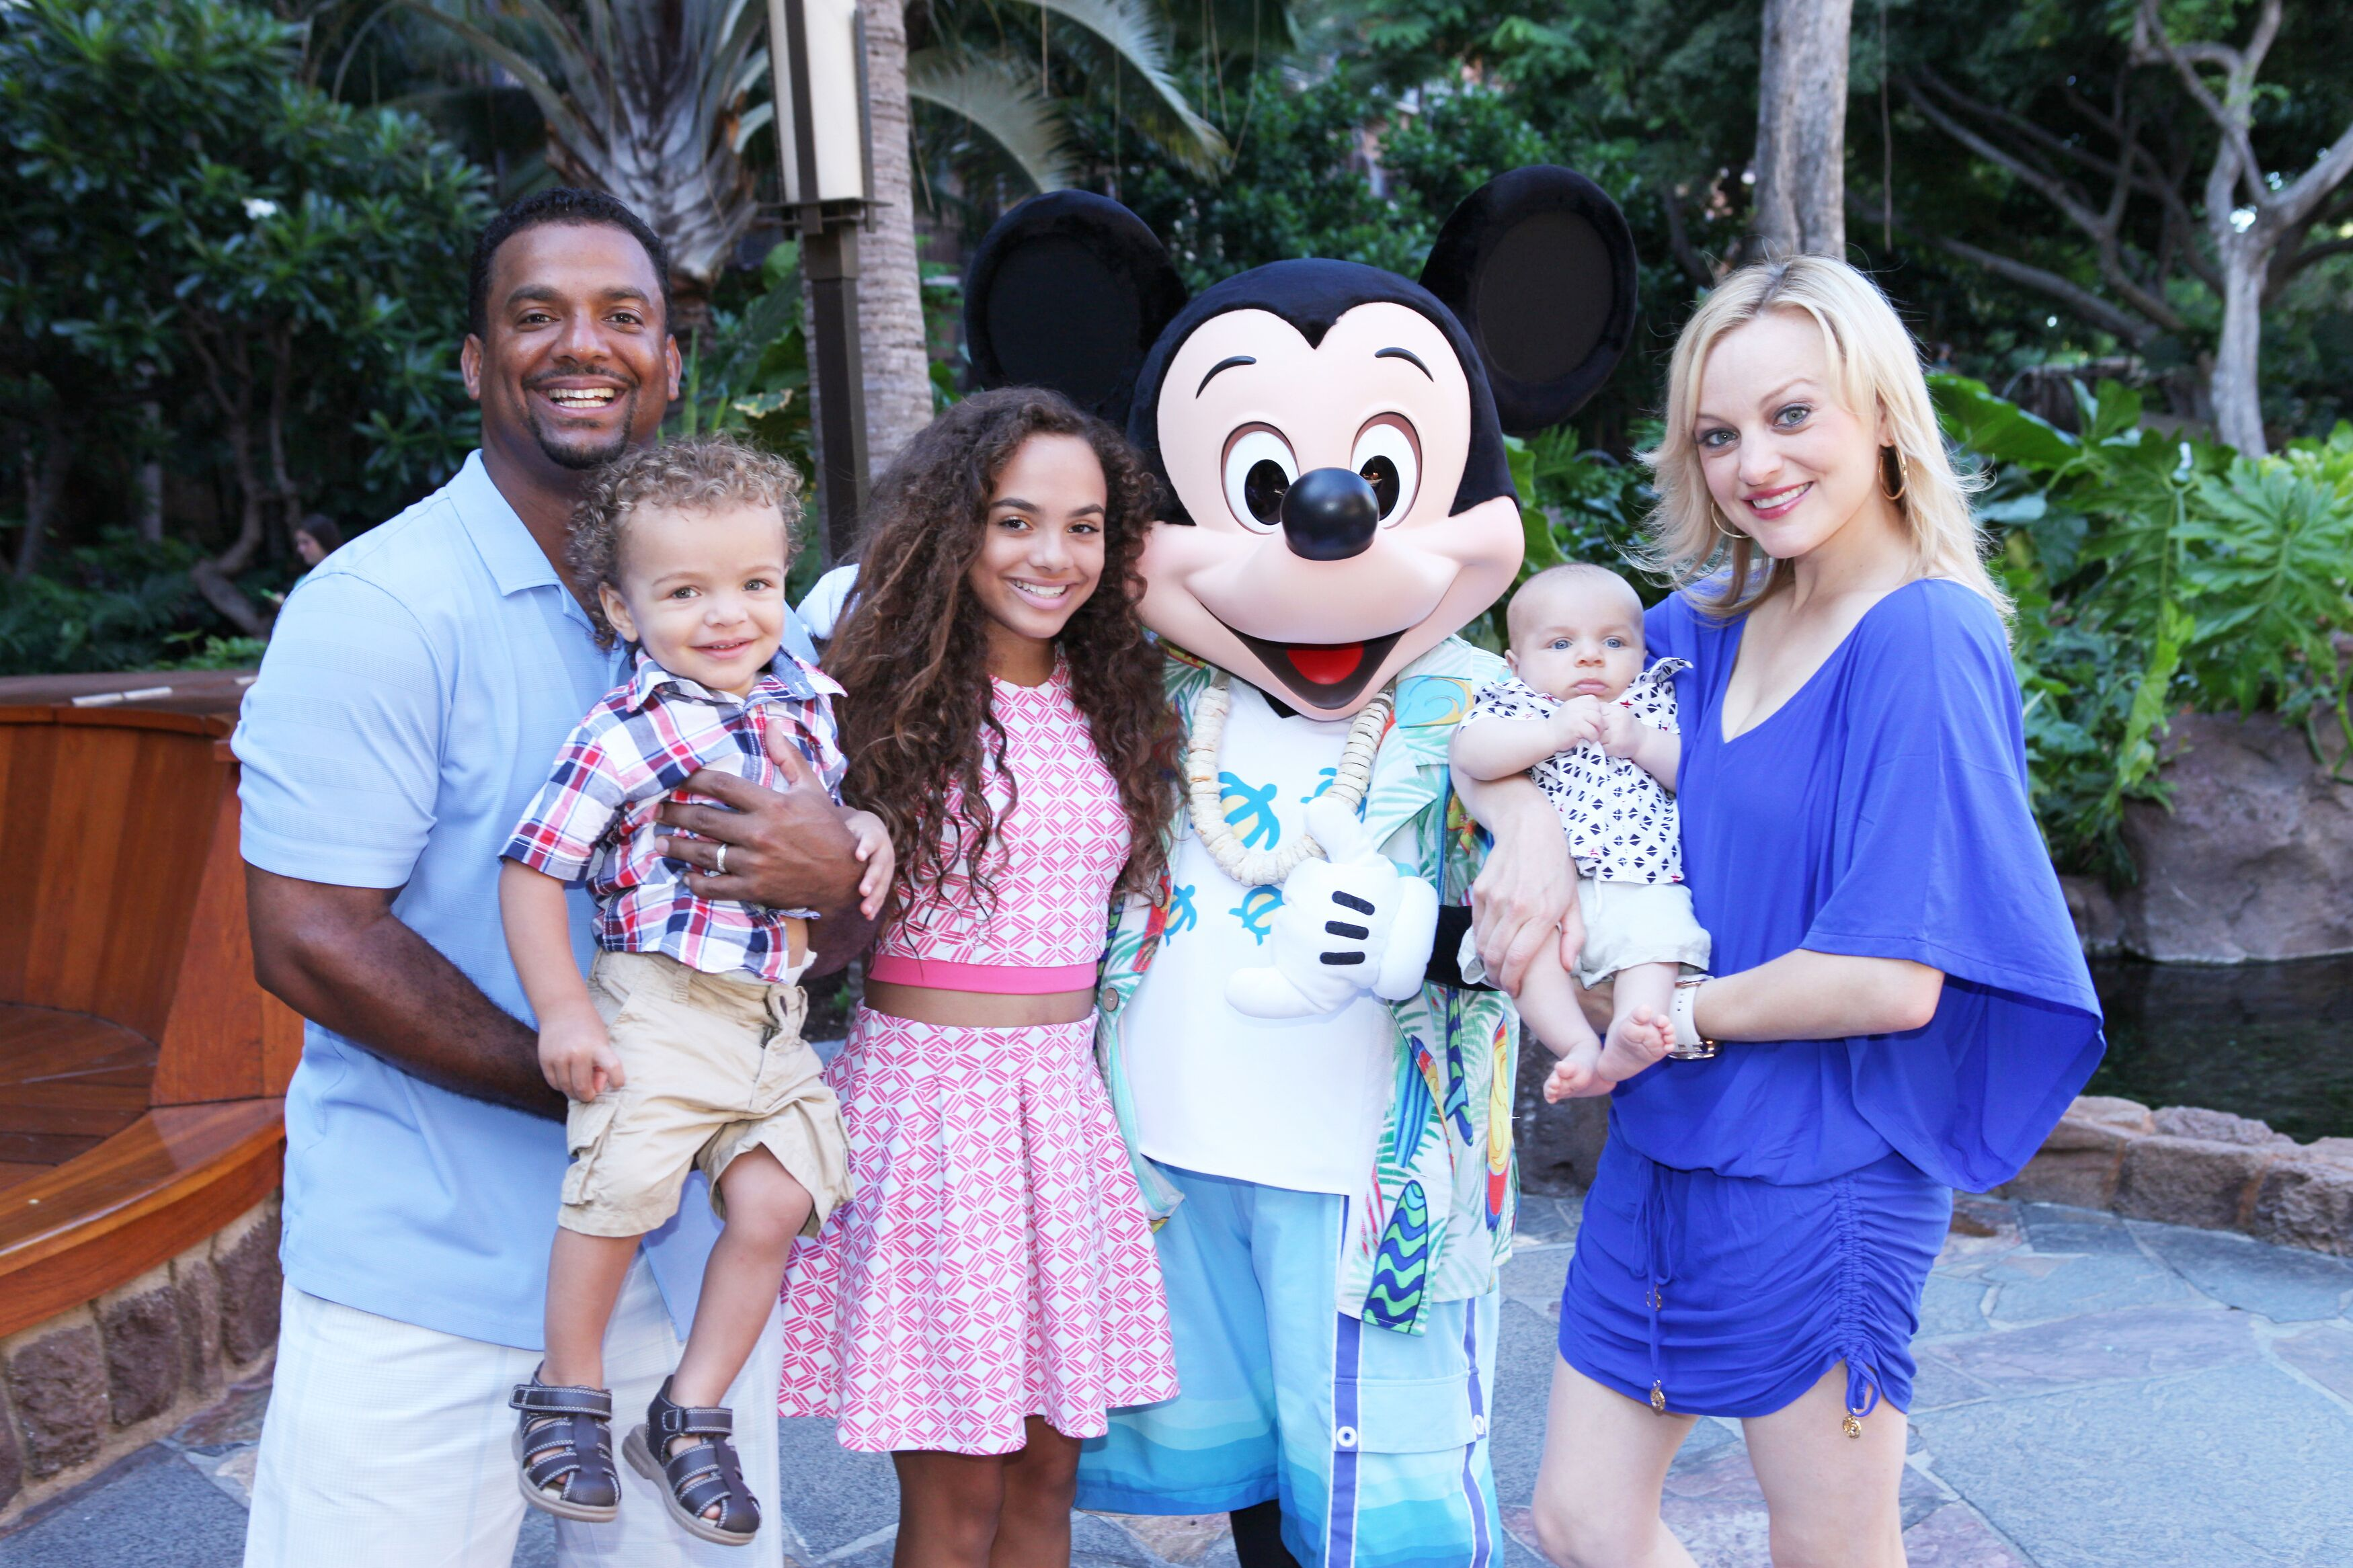 Alfonso and Angela Ribeiro take their children on a Disney adventure | Source: Getty Images/GlobalImagesUkraine